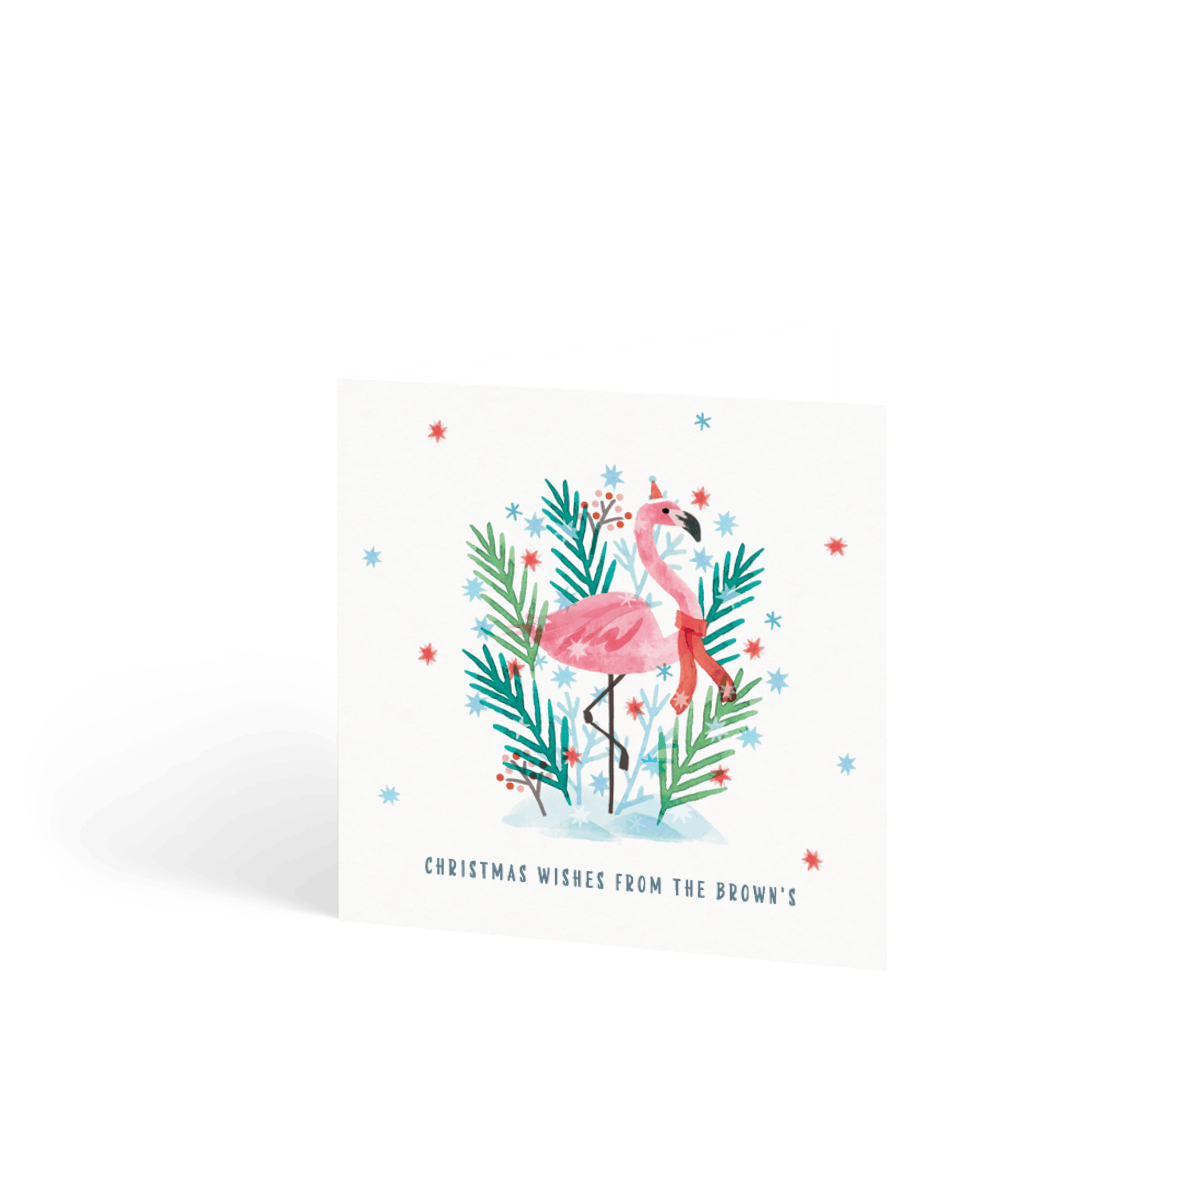 Https%3a%2f%2fwww.papier.com%2fproduct image%2f41733%2f16%2fchristmas flamingo 10633 front 1542208356.png?ixlib=rb 1.1